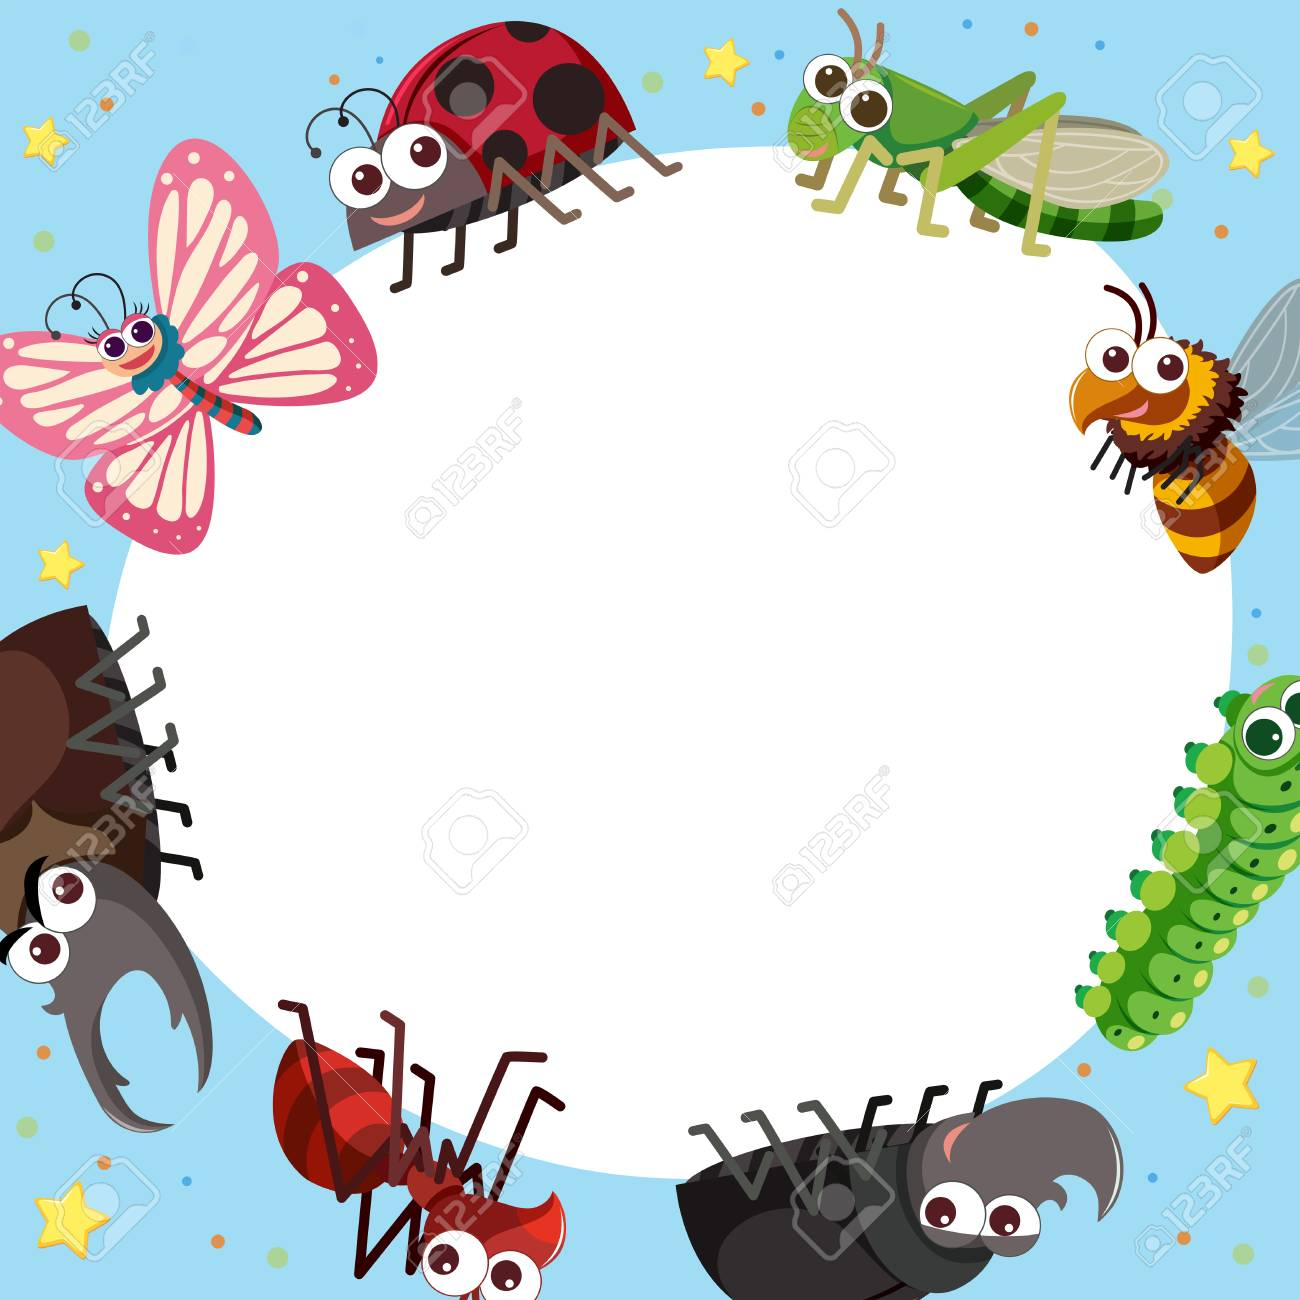 hight resolution of border template with different types of bugs illustration stock vector 88900828